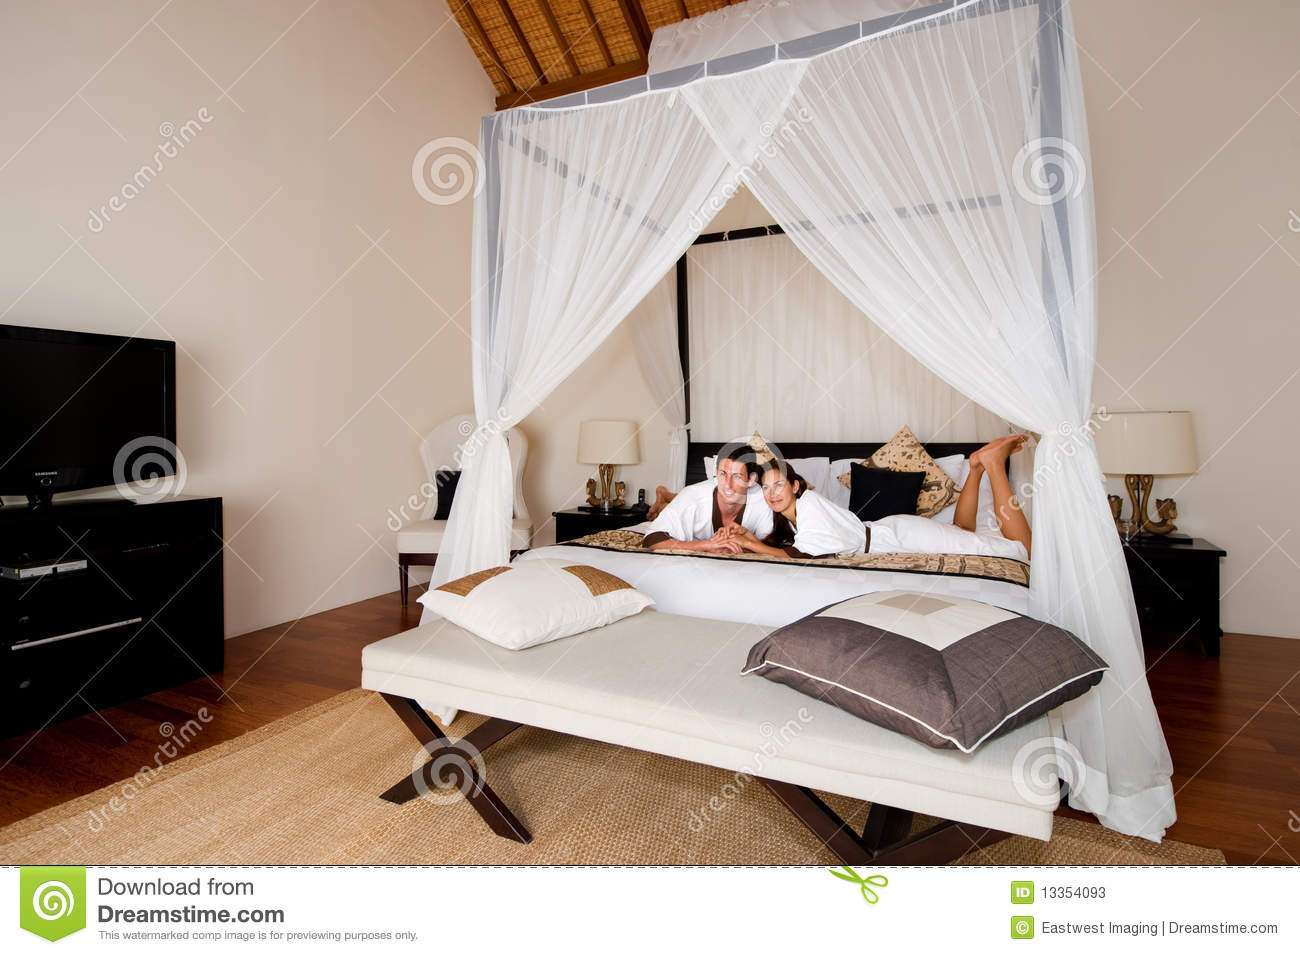 Couple Relaxing In Bedroom Stock Photos Image 13354093